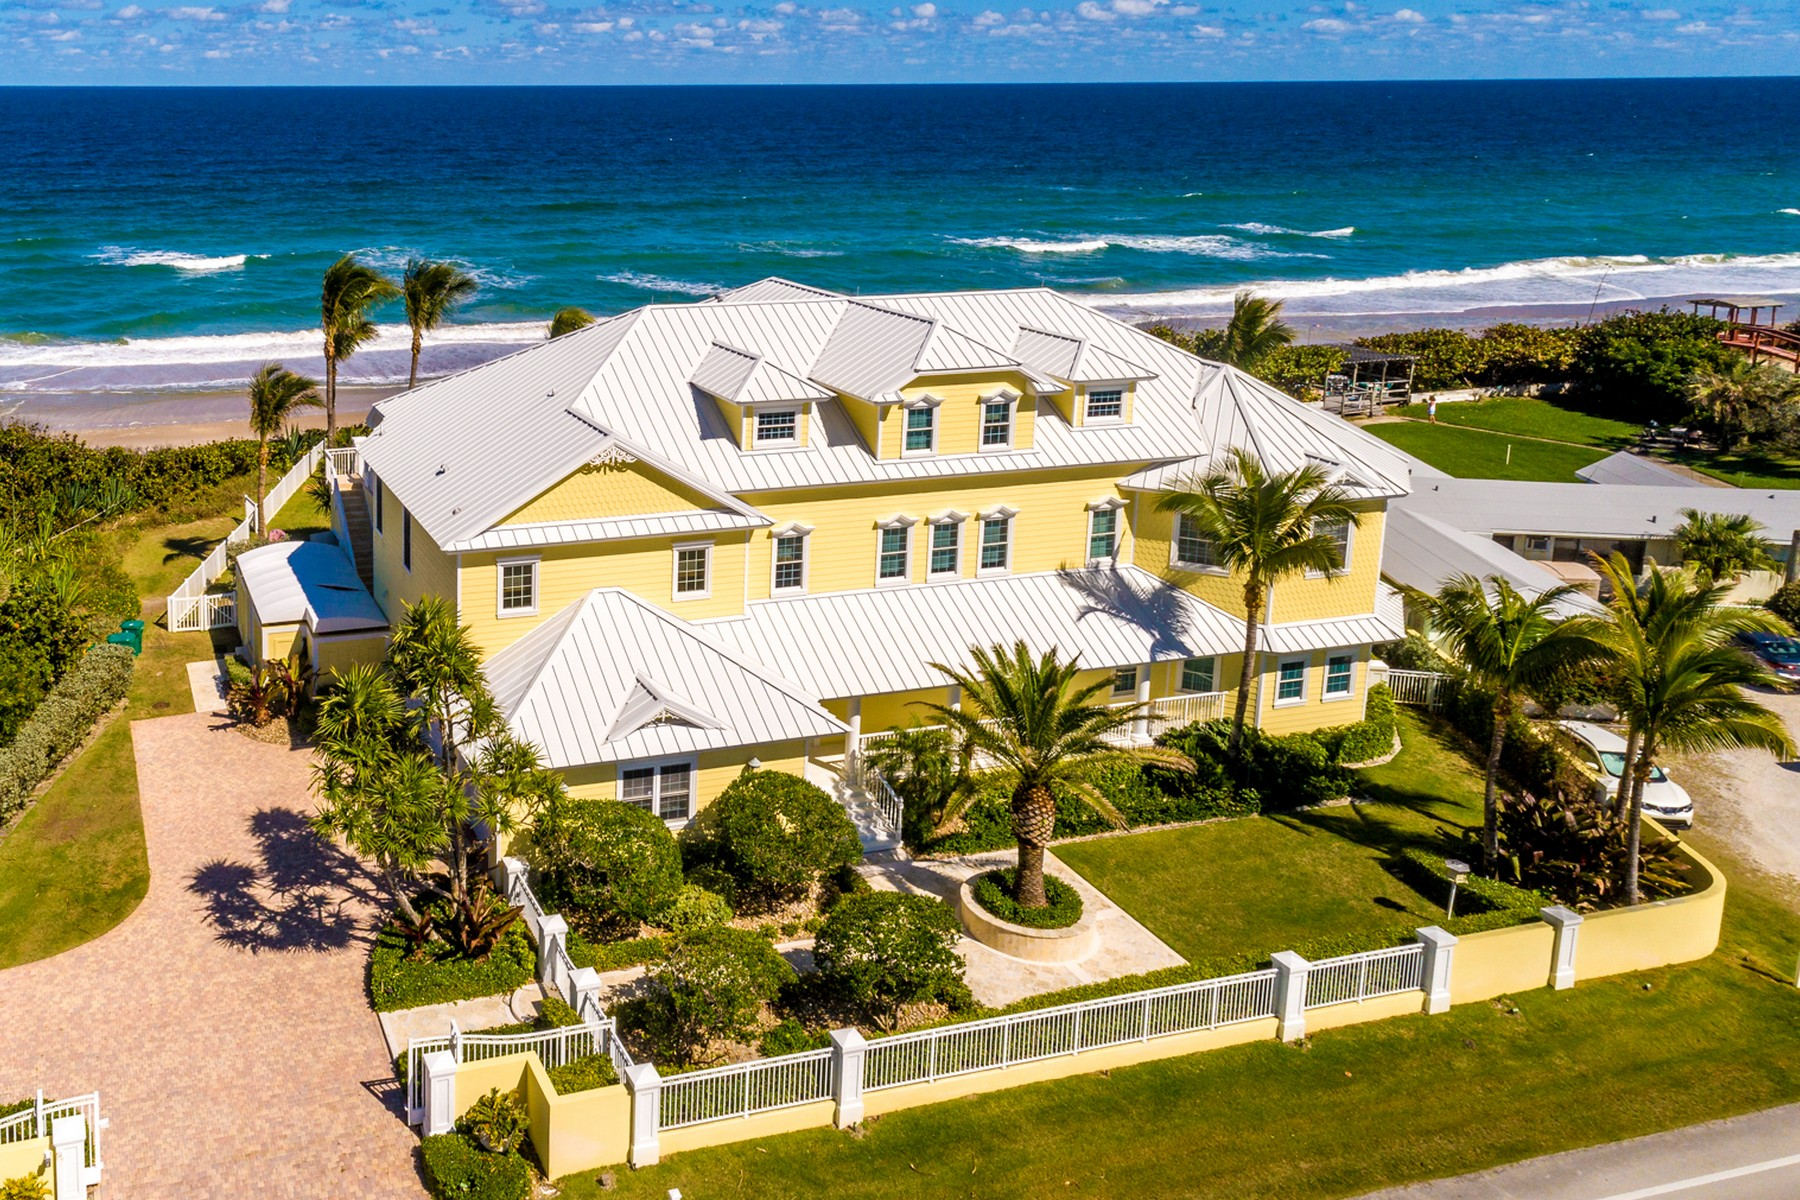 Single Family Homes için Satış at Gorgeous Tropically Landscaped Home with Endless Ocean Vistas 5045 S Highway A1A Melbourne Beach, Florida 32951 Amerika Birleşik Devletleri